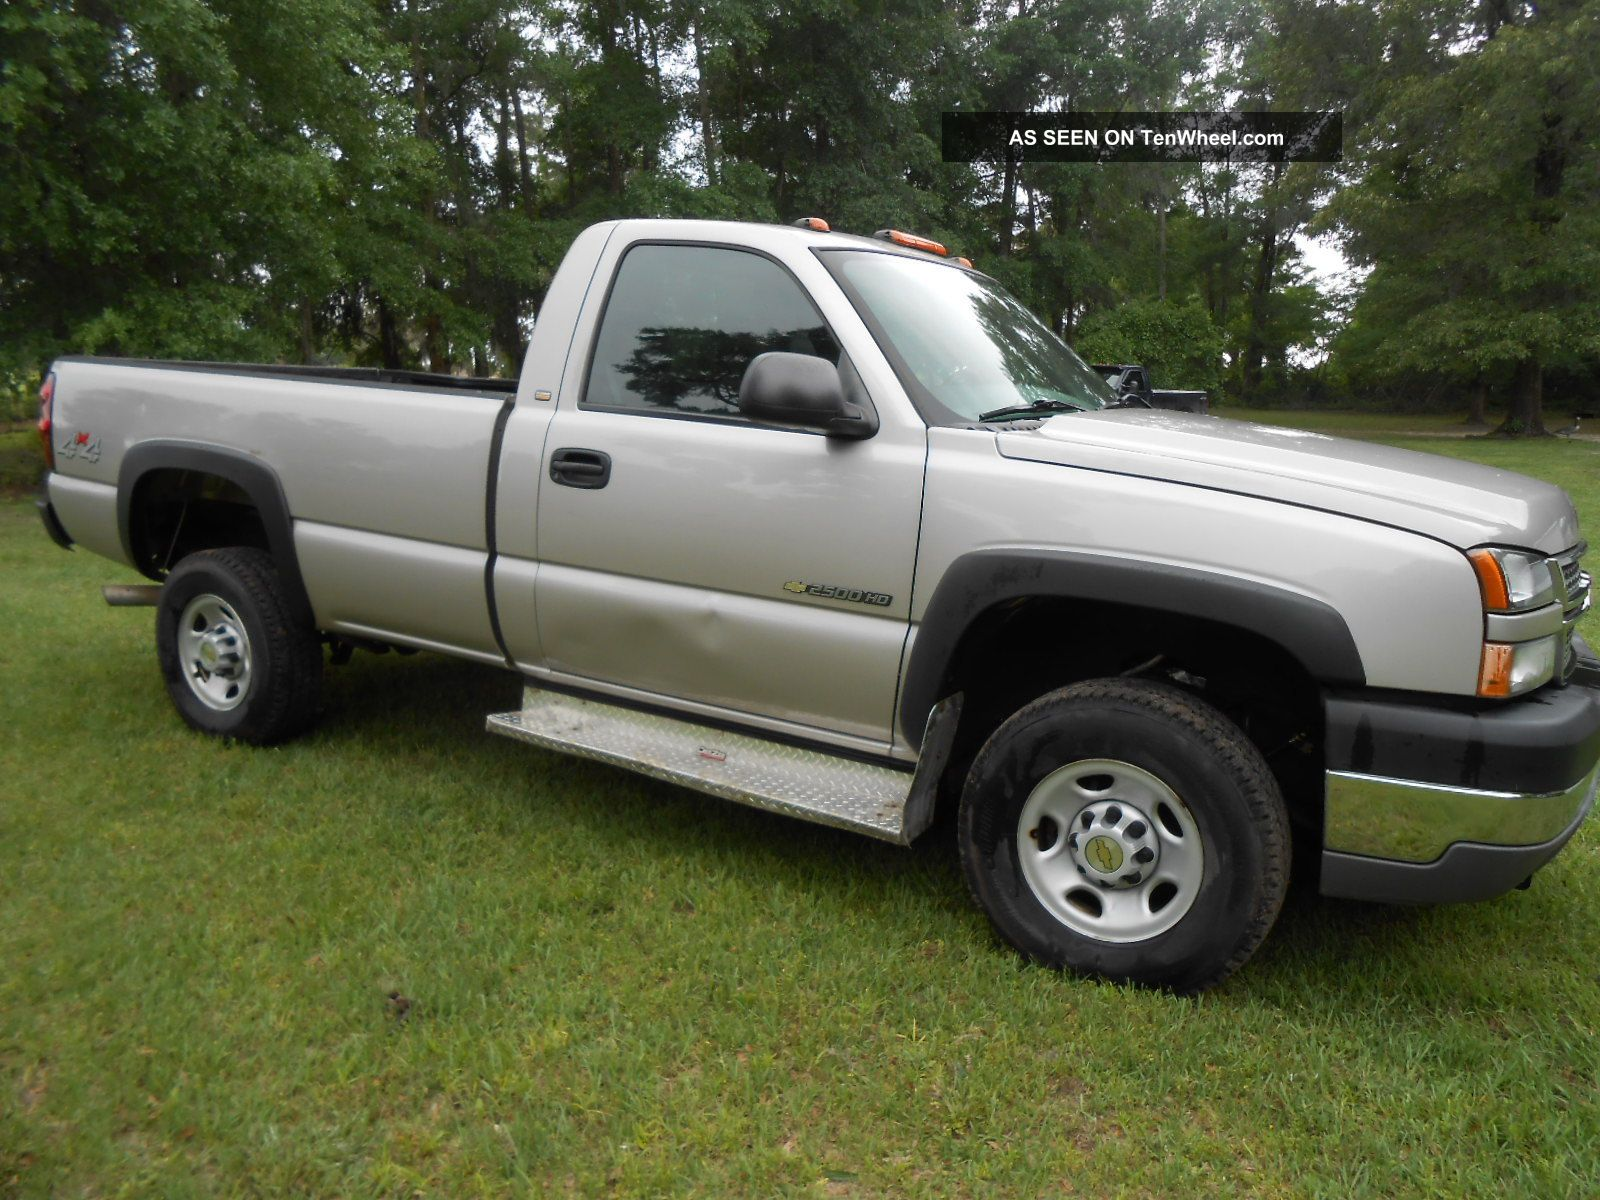 2005 chevrolet silverado 2500hd pickup 4wd. Black Bedroom Furniture Sets. Home Design Ideas